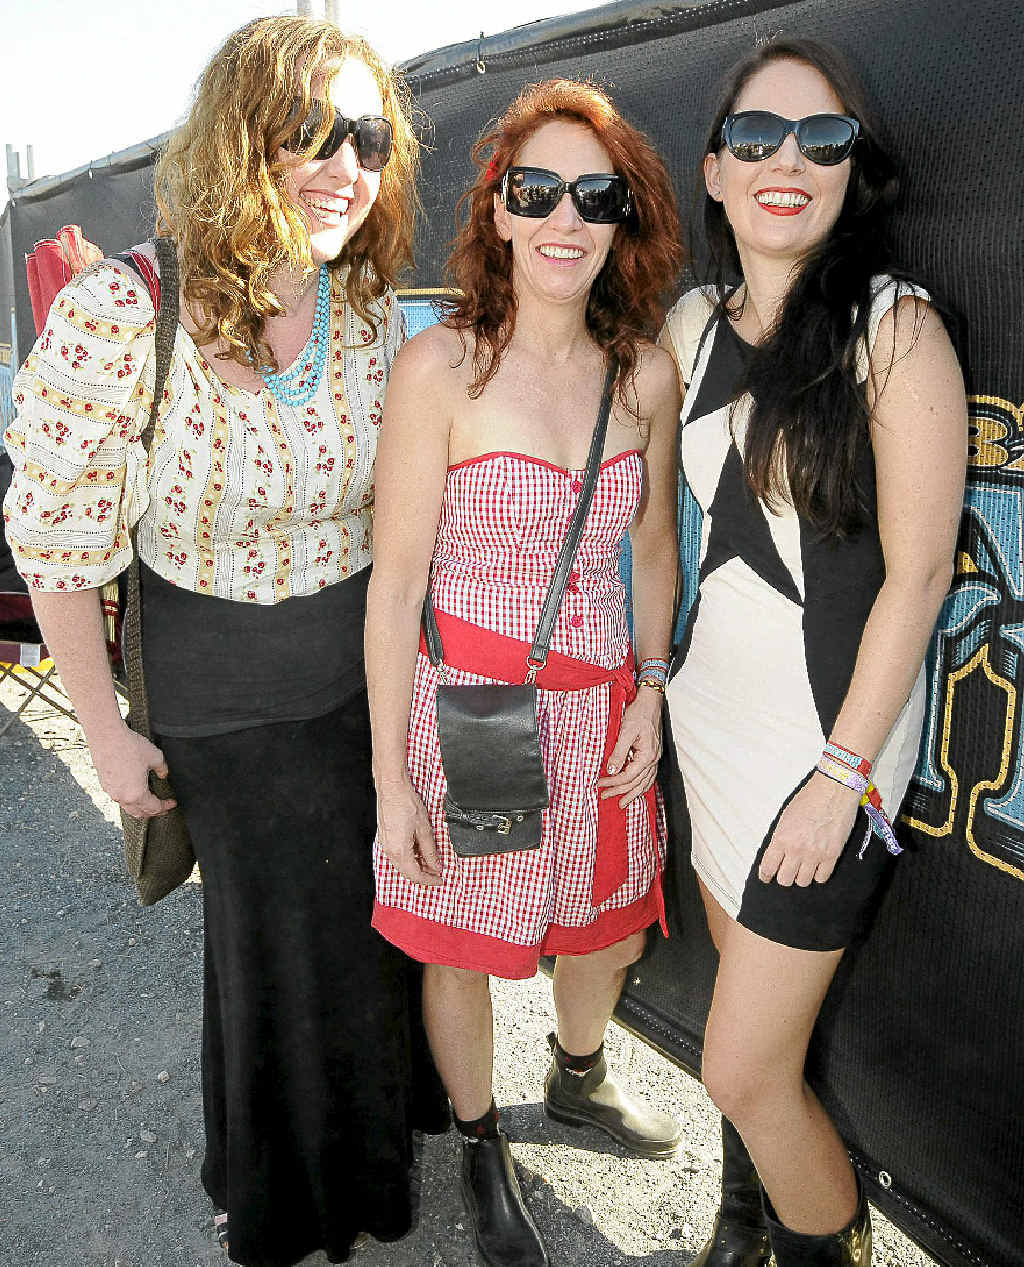 Brisbanites Laura Taylor, Edwina Luck and Zoe White joined the unofficial fashion parade at Bluesfest.